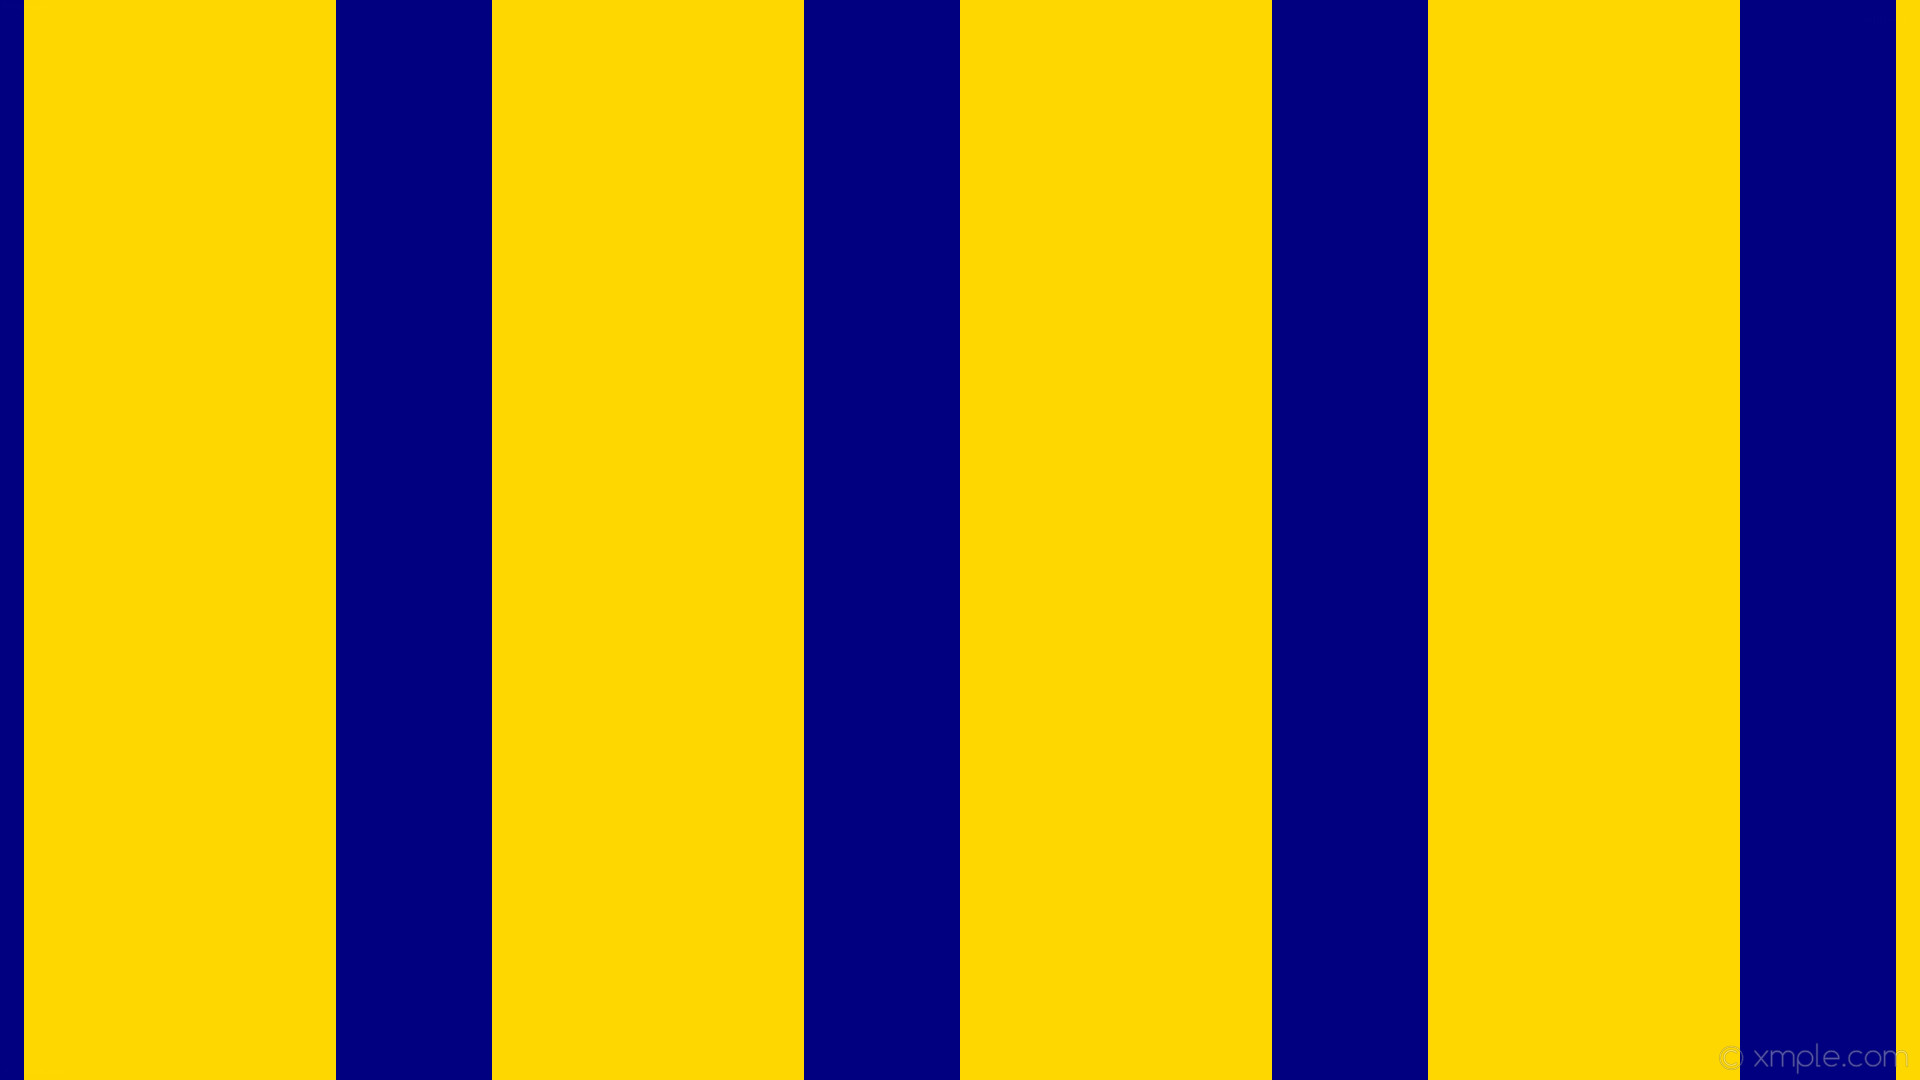 wallpaper stripes blue yellow lines streaks navy gold #000080 #ffd700  vertical 156px 312px